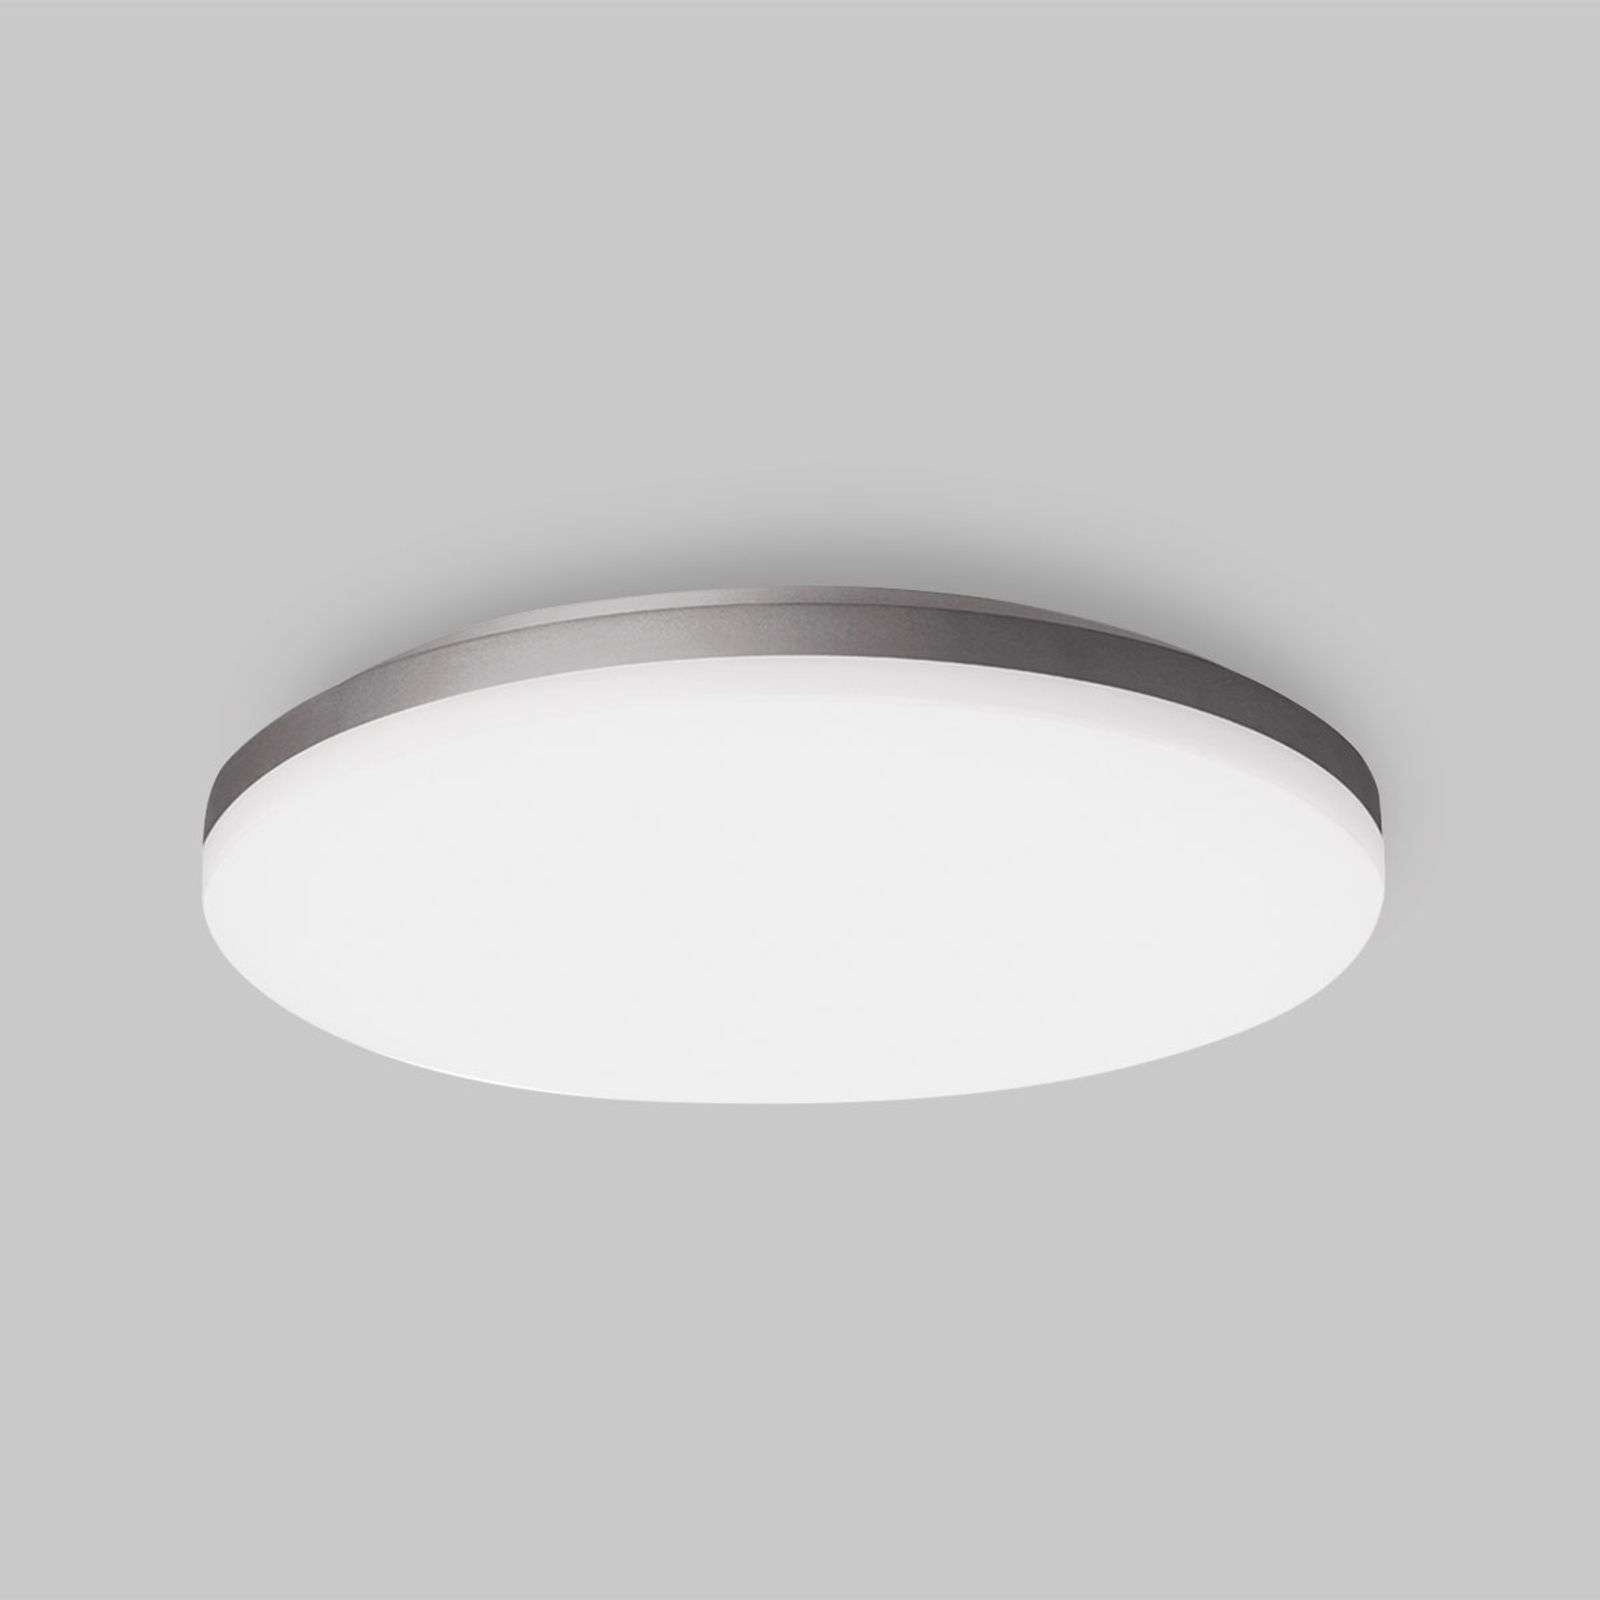 Applique LED WL220 opale 2x59° 4 000 K